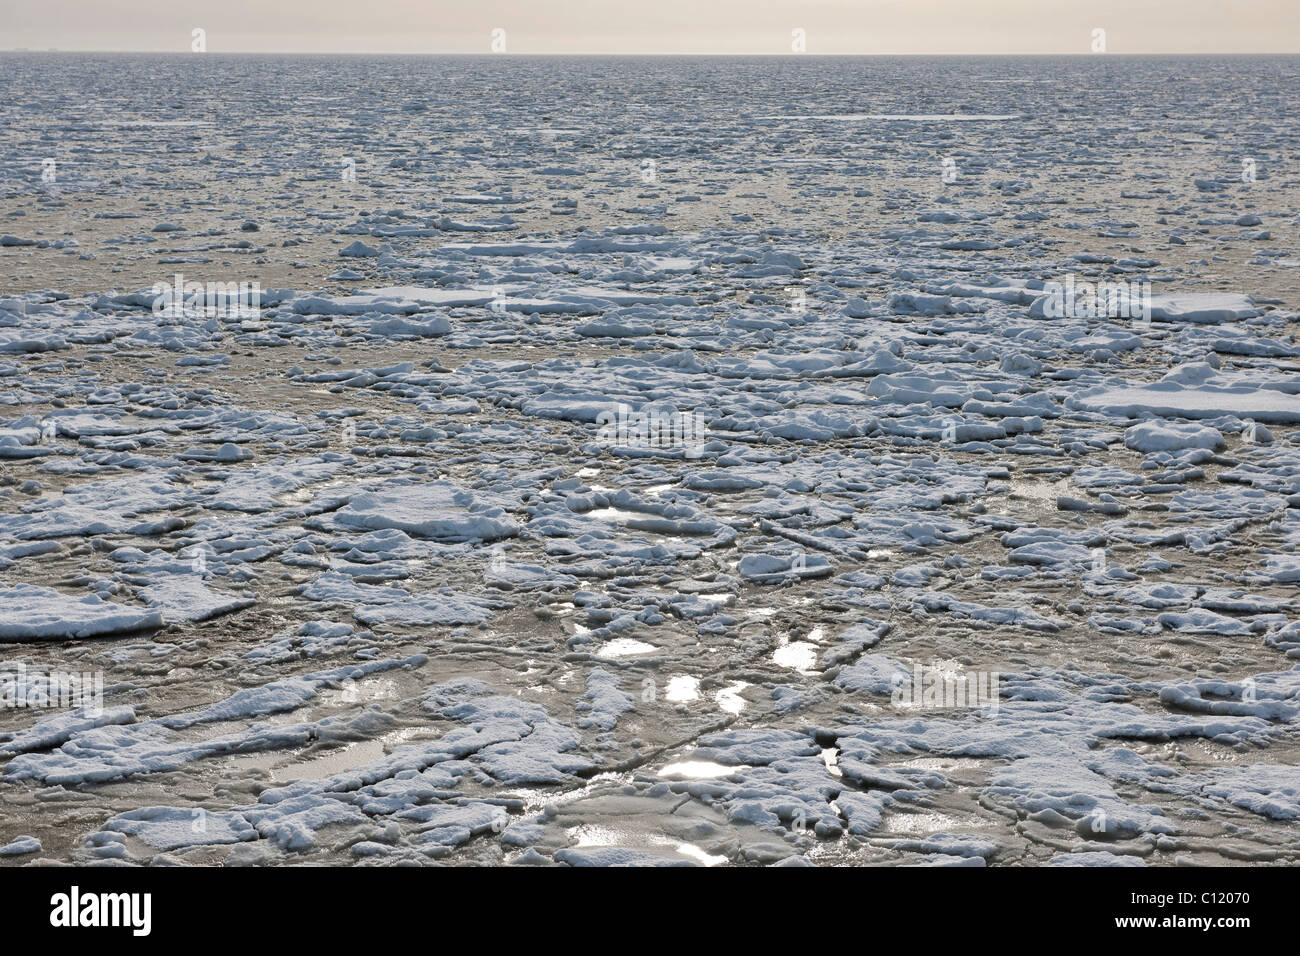 A rare spectacle of nature, the icy North Sea, Foehr island, Nationalpark Schleswig-Holsteinisches Wattenmeer, - Stock Image